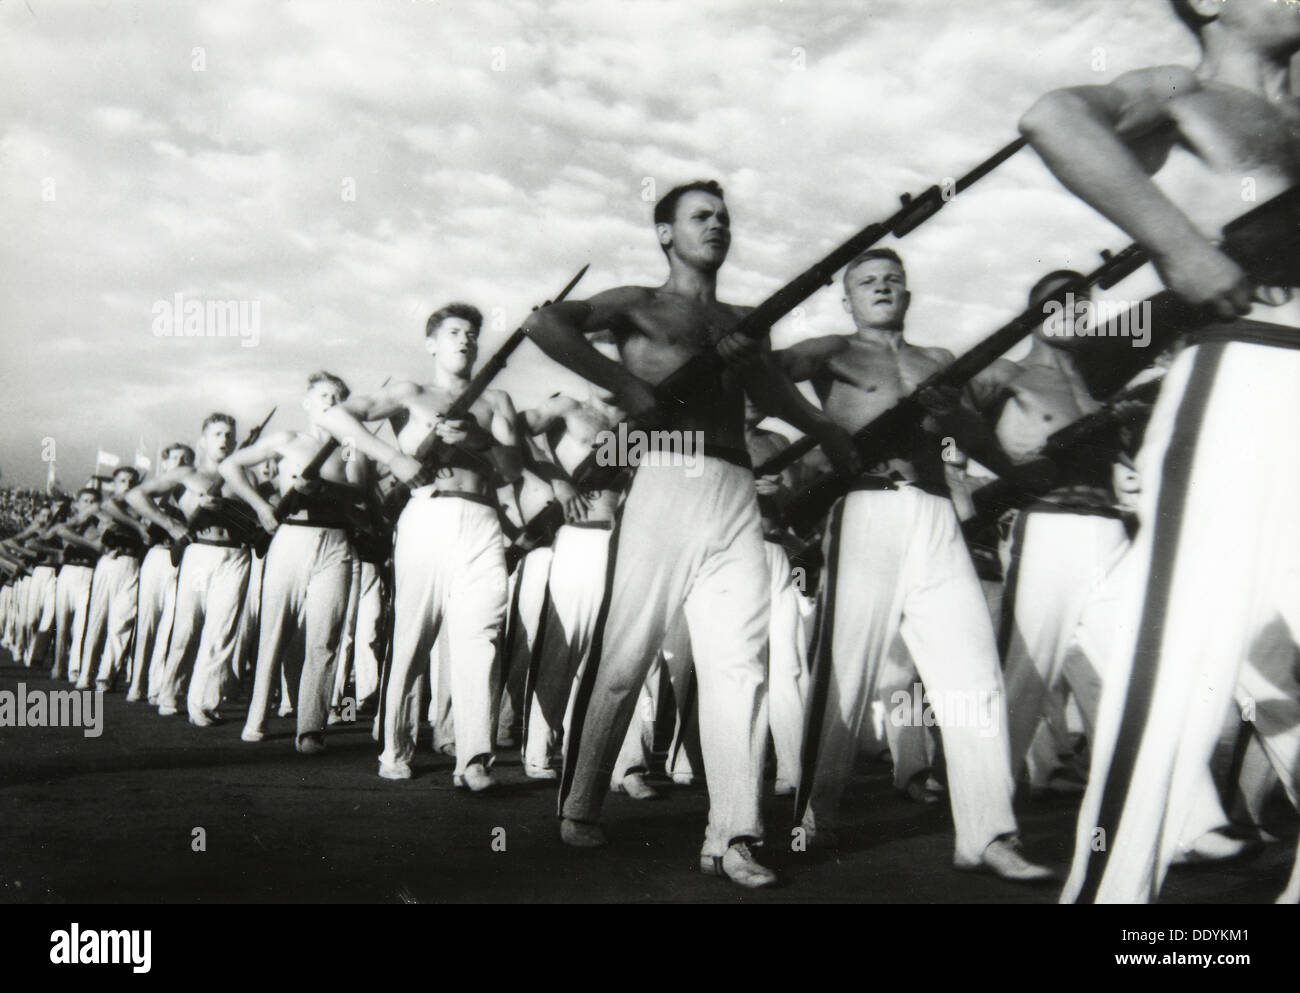 Parade of the Young Communists, Moscow, USSR, 1930s. - Stock Image